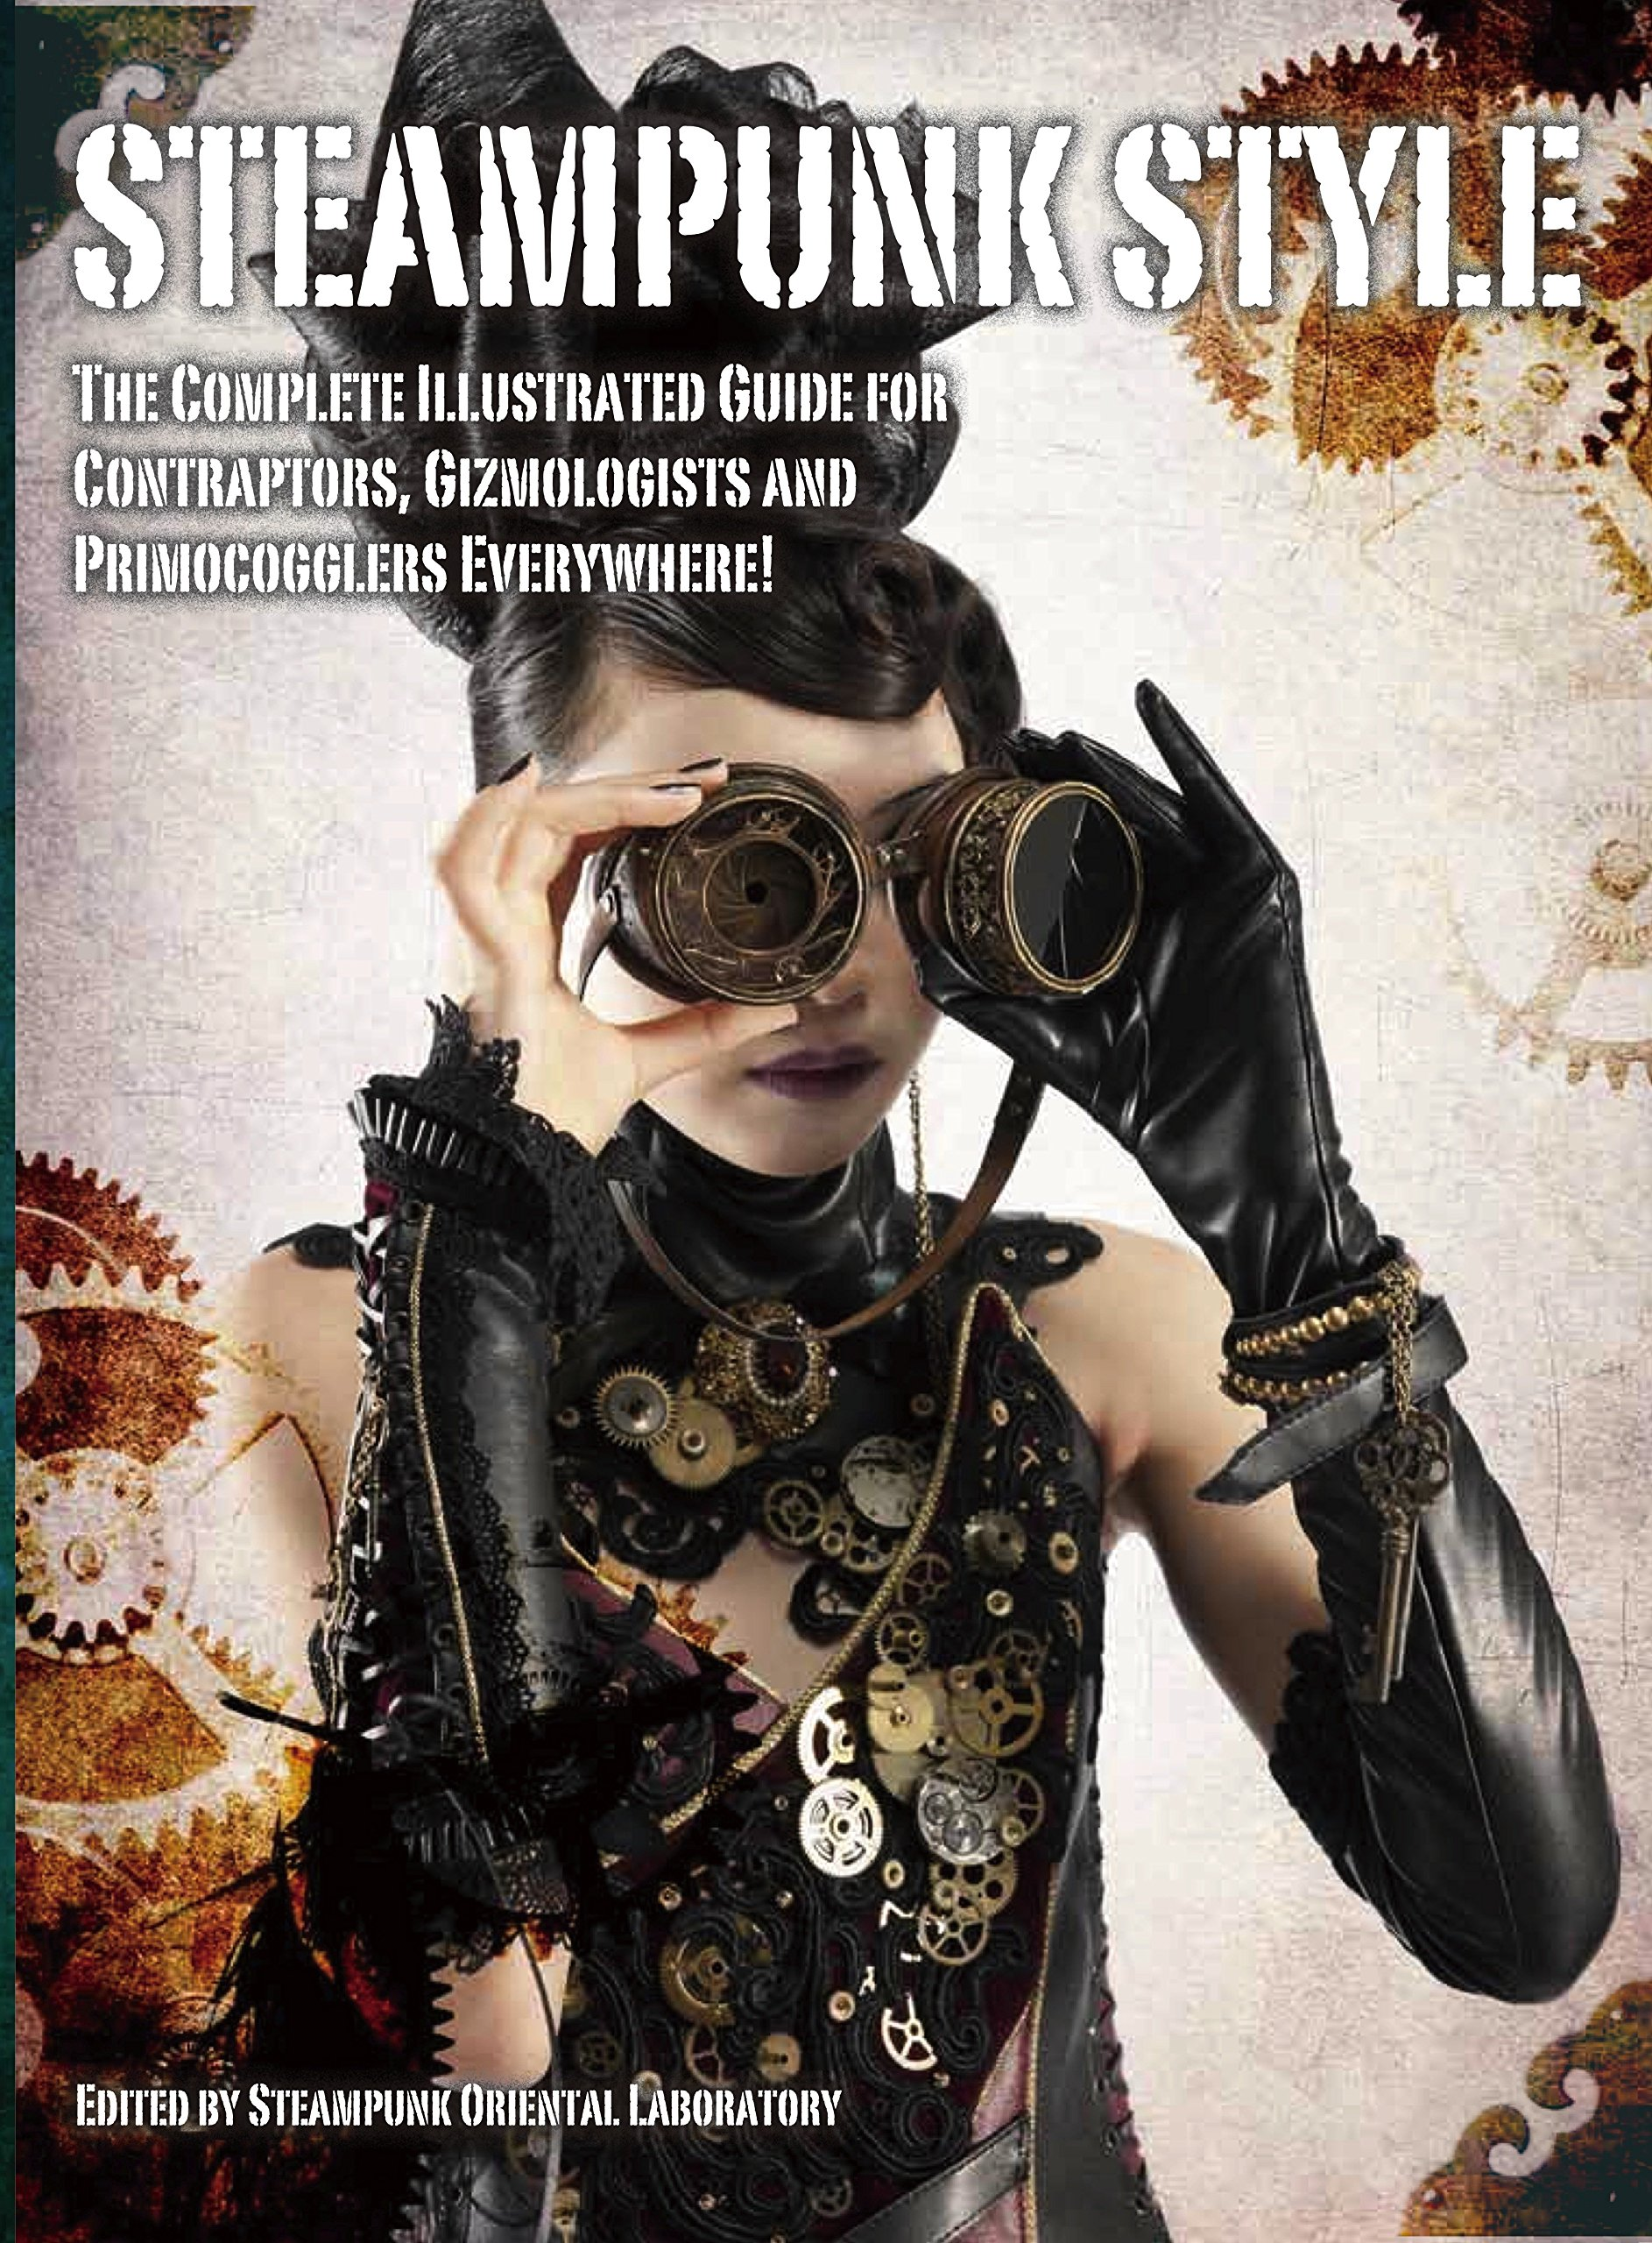 Steampunk Style: The Complete Illustrated guide for Contraptors, Gizmologists, and Primocogglers Everywhere! pdf epub